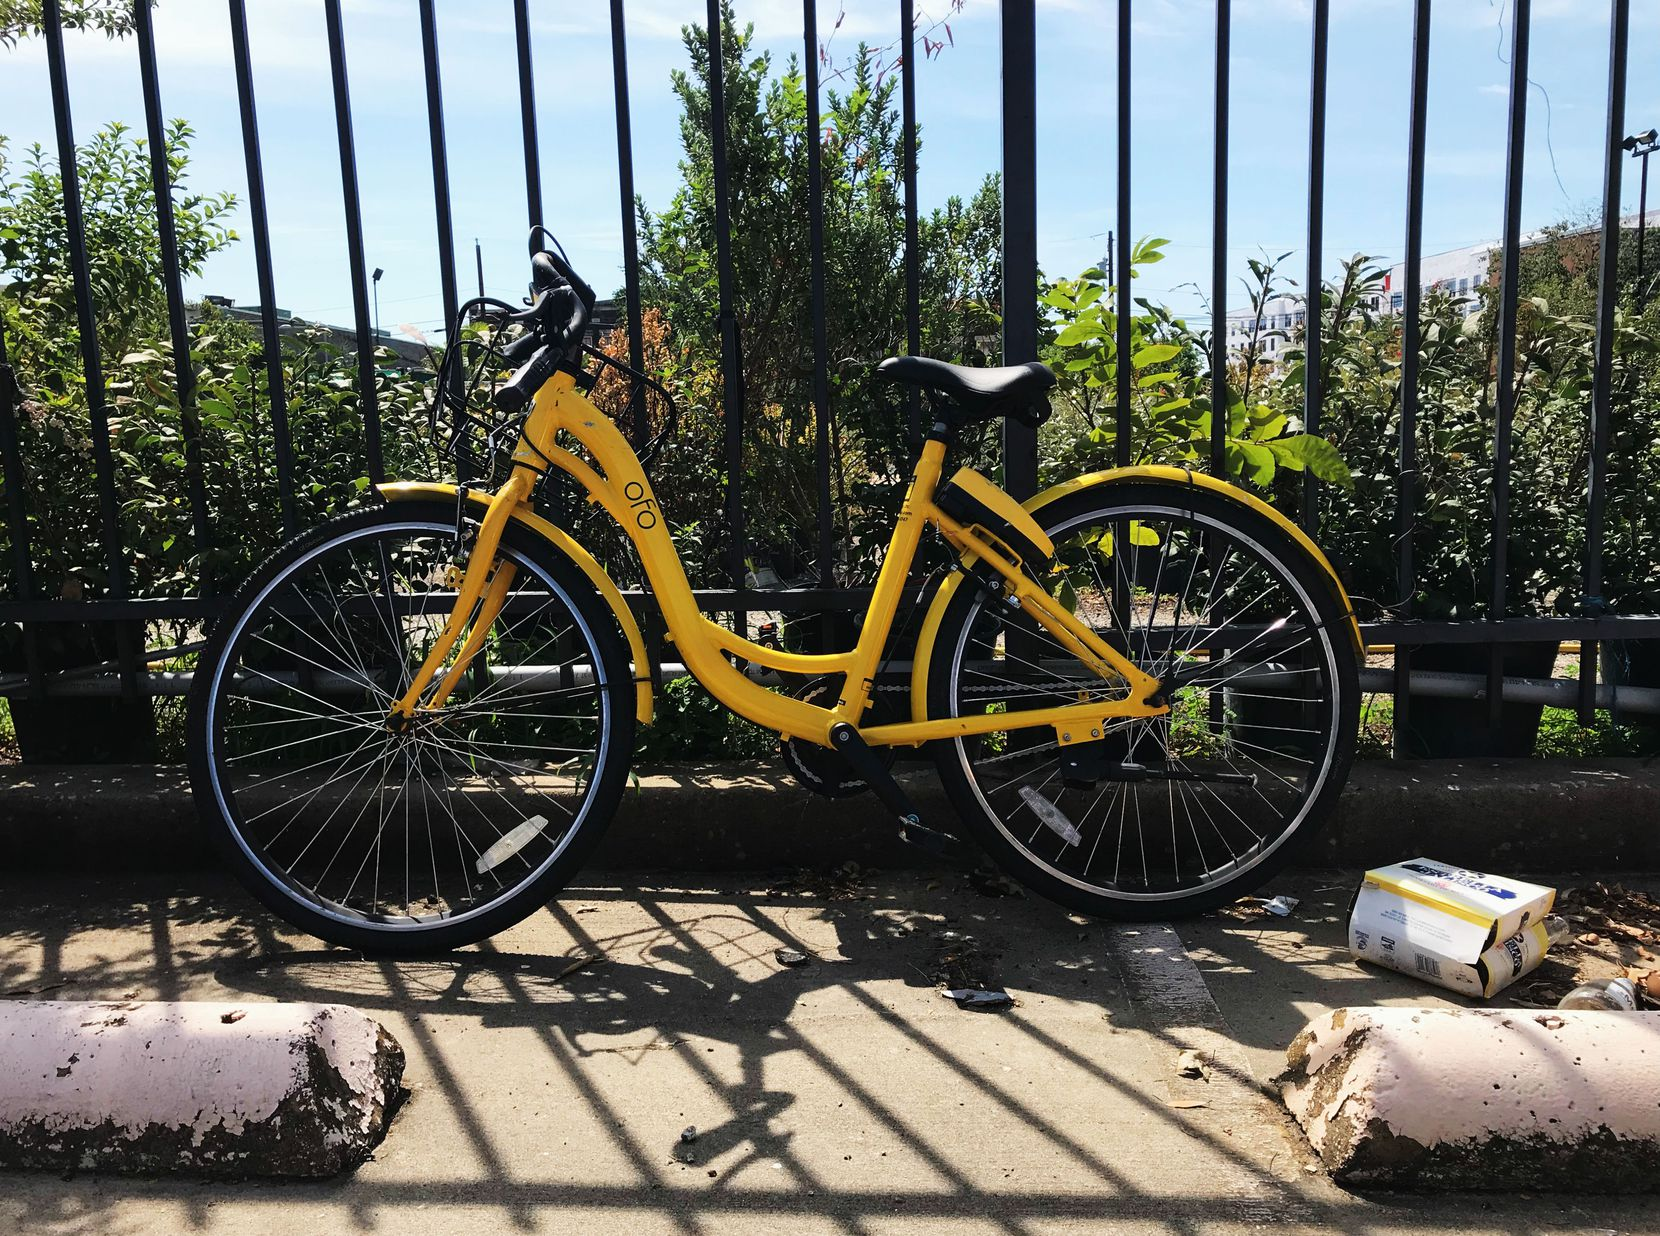 An abandoned Ofo bike in a parking lot in Downtown Dallas. Just imagine if this was a common sight around Dallas now, rather than a rarity.